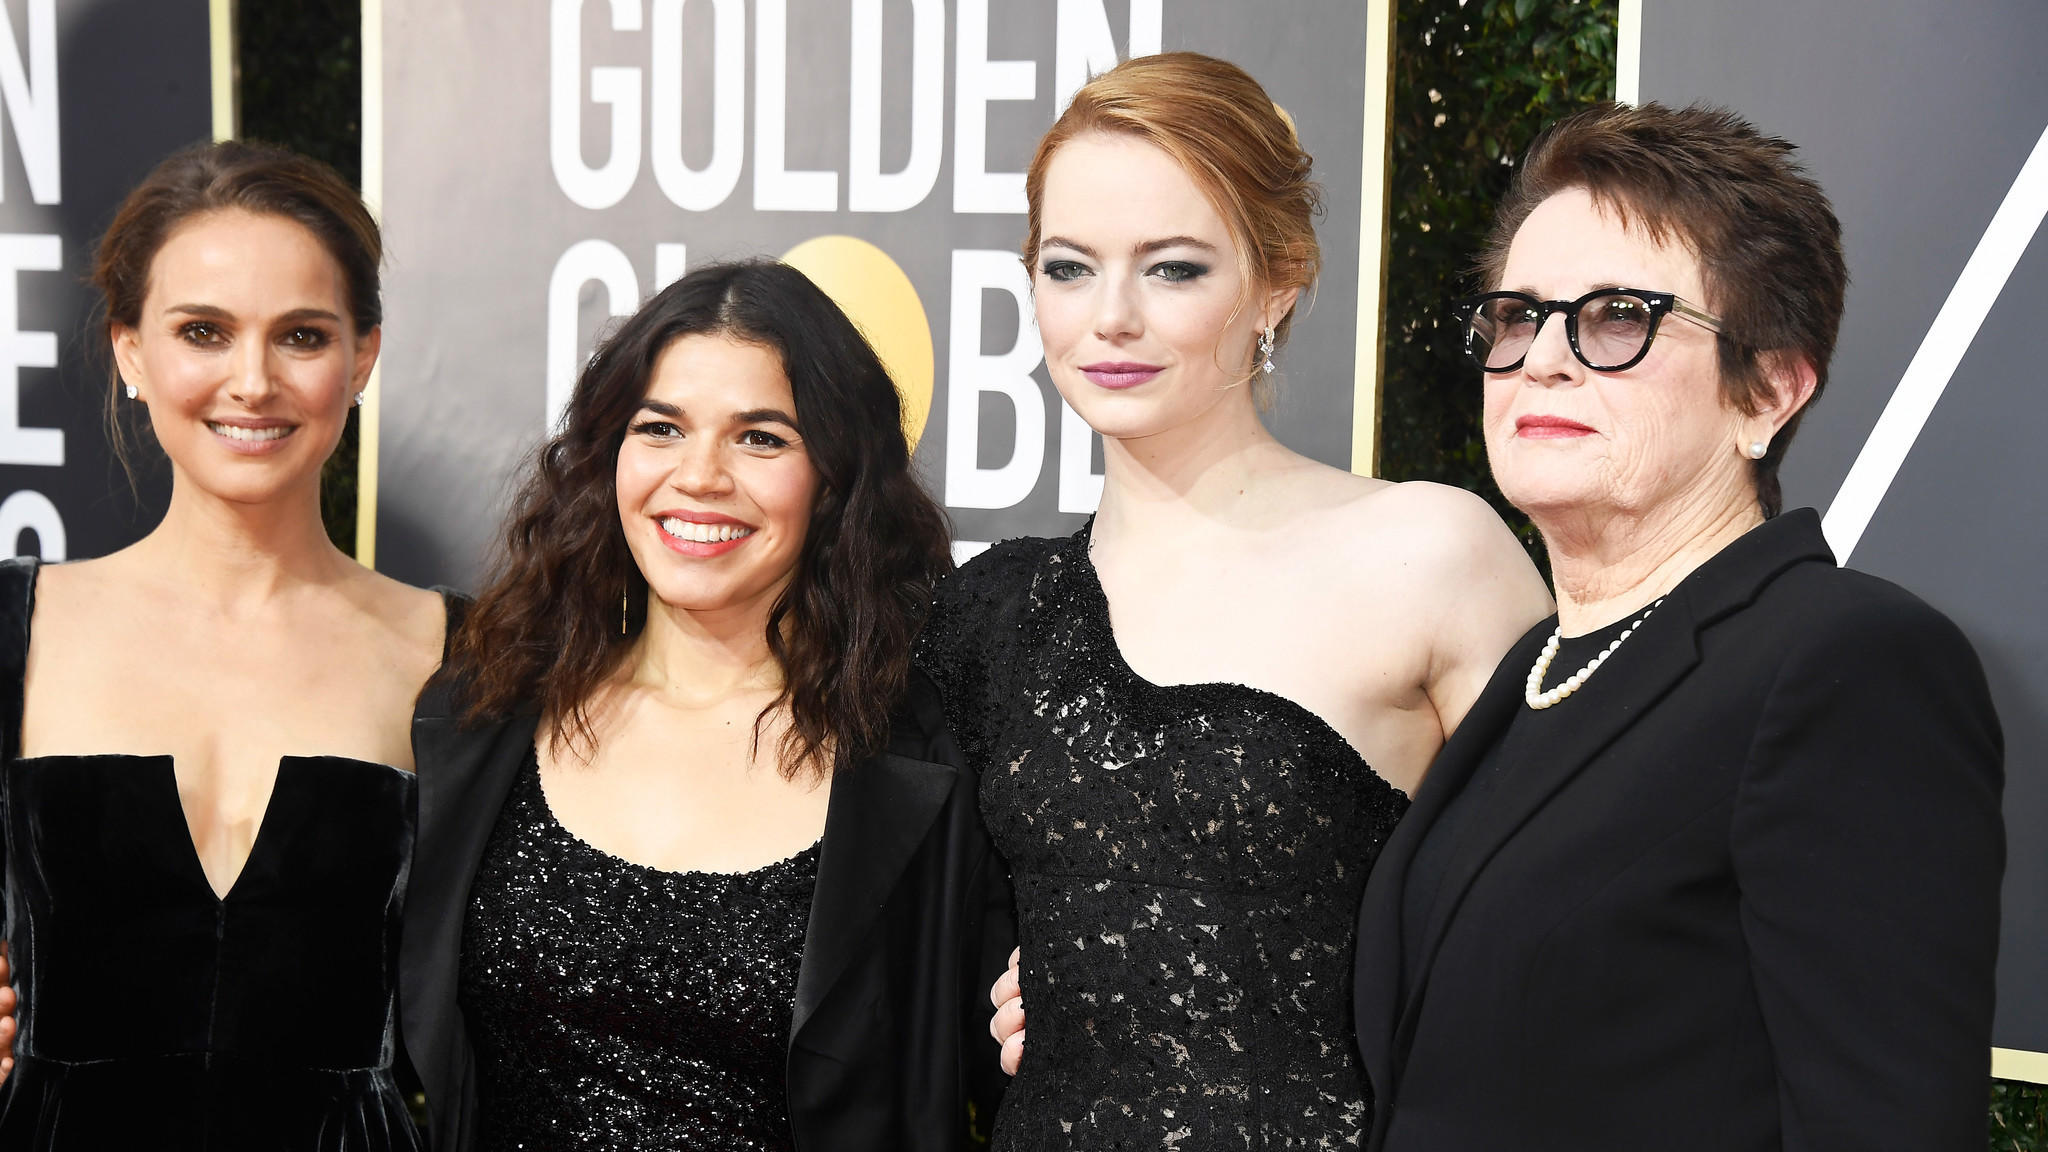 Golden Globes 2018: All-black style on the red carpet shows solidarity